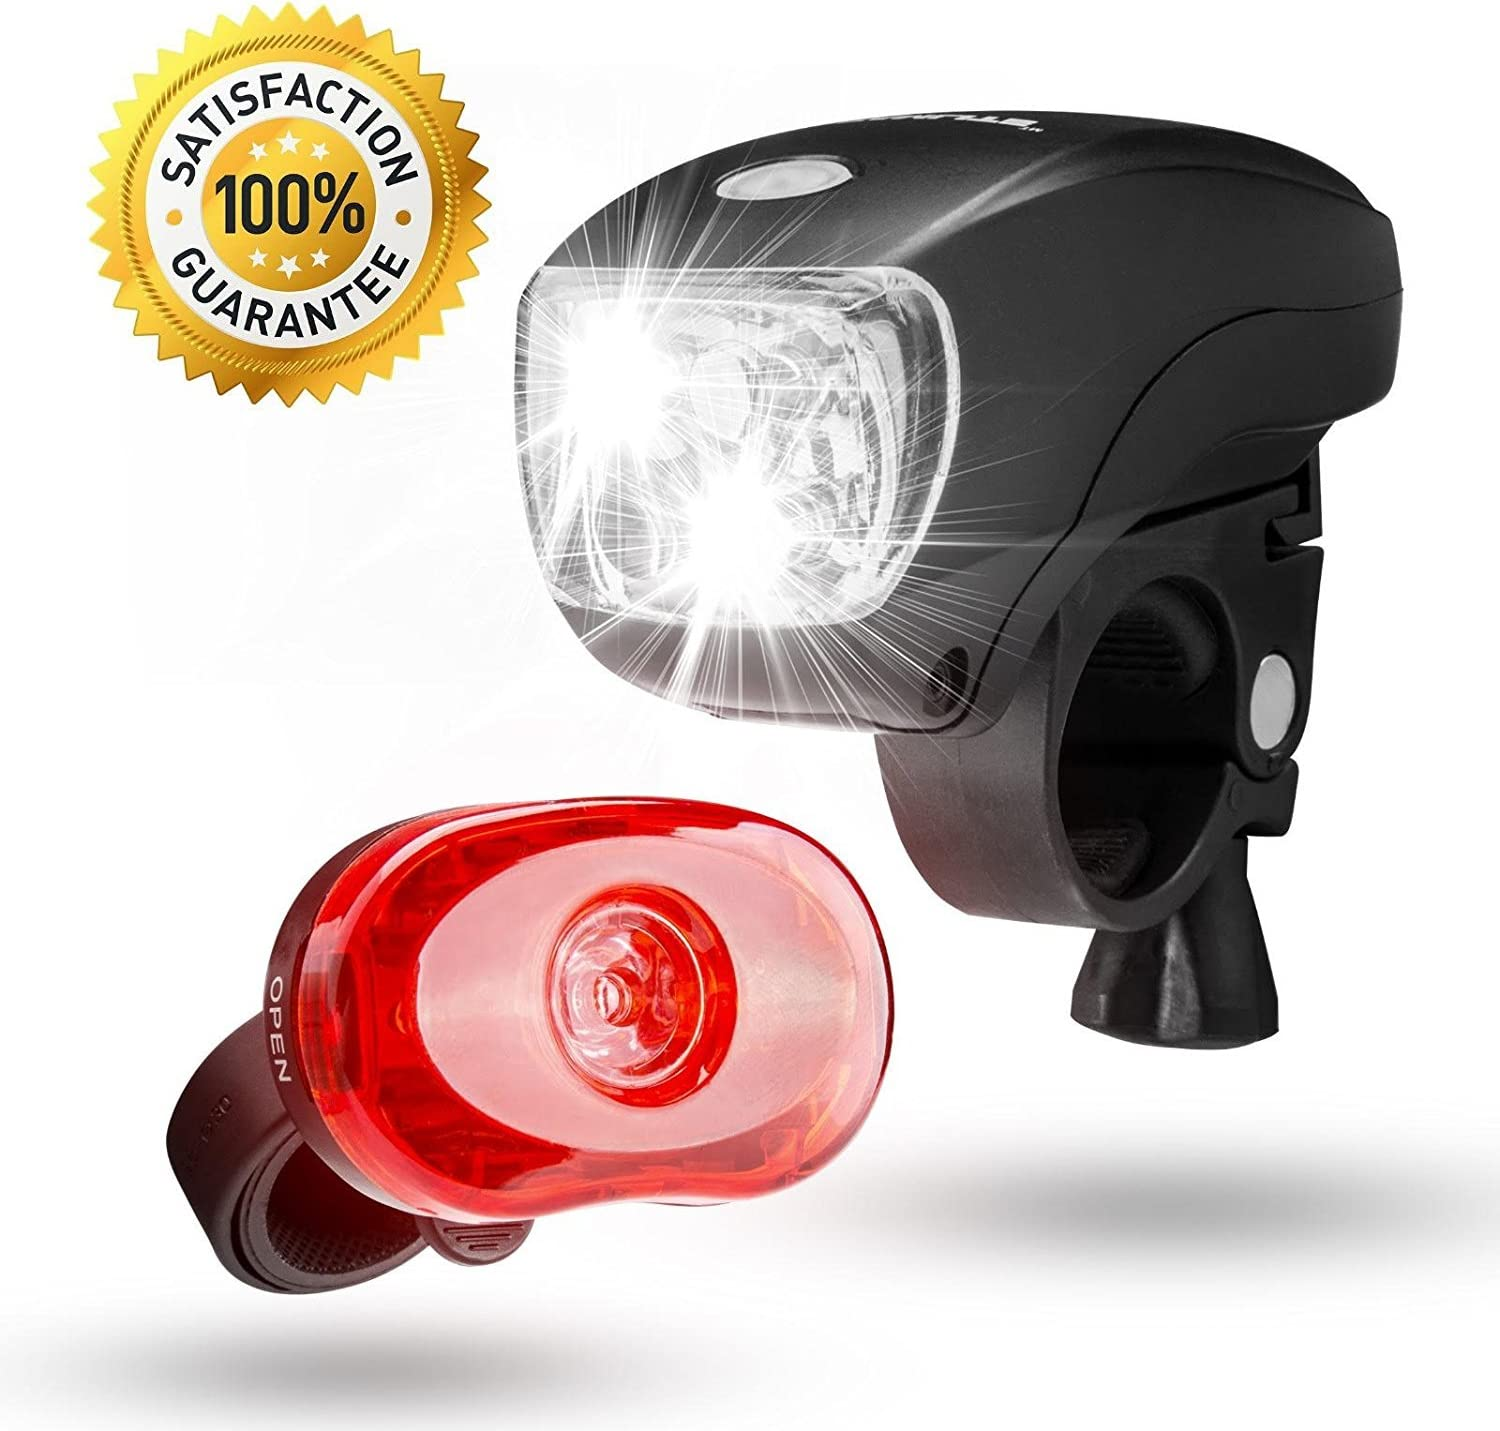 New Bicycle Light Front /& Rear Bike Light Set Pink Push Cycle Light Clip